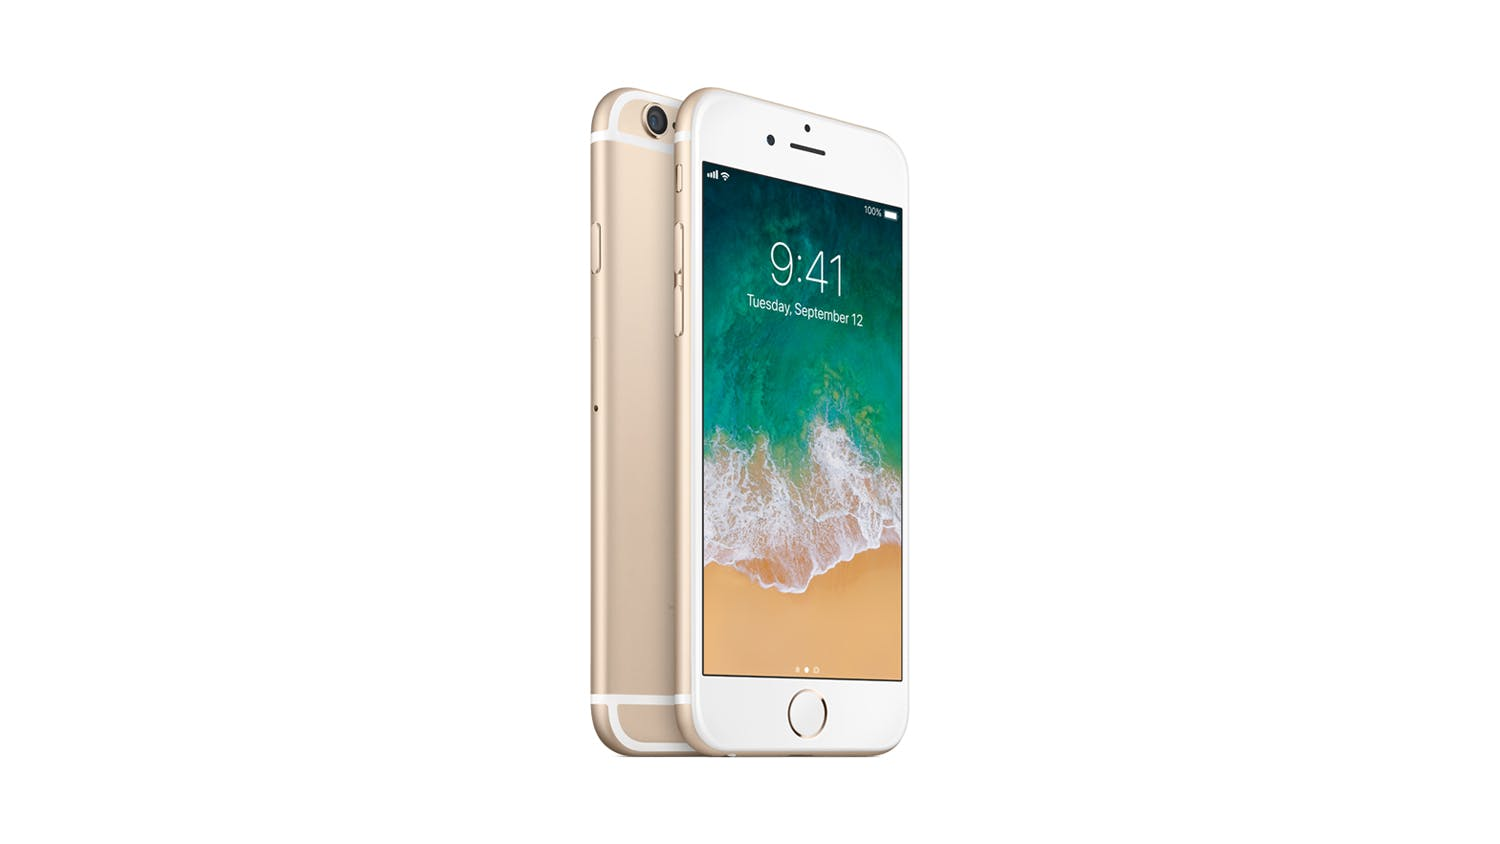 iPhone 6 32GB on Vodafone | Harvey Norman New Zealand